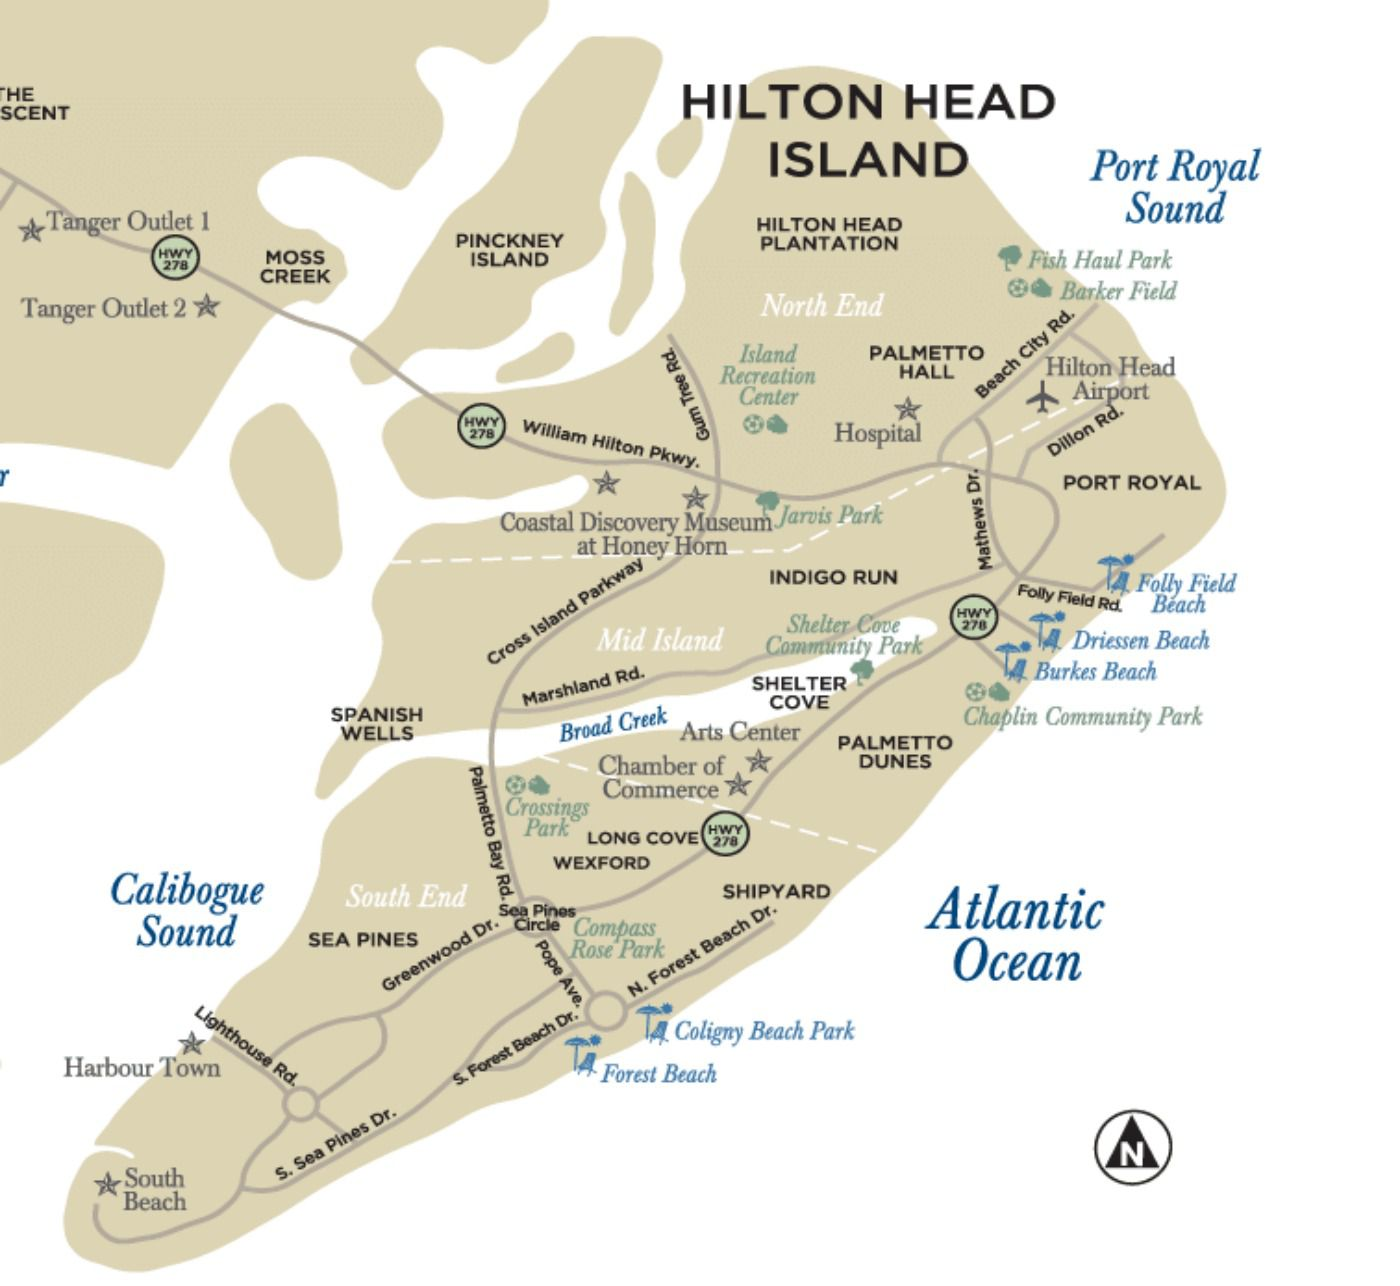 Folly Beach South Carolina Map.Maps Of Hilton Head Island South Carolina